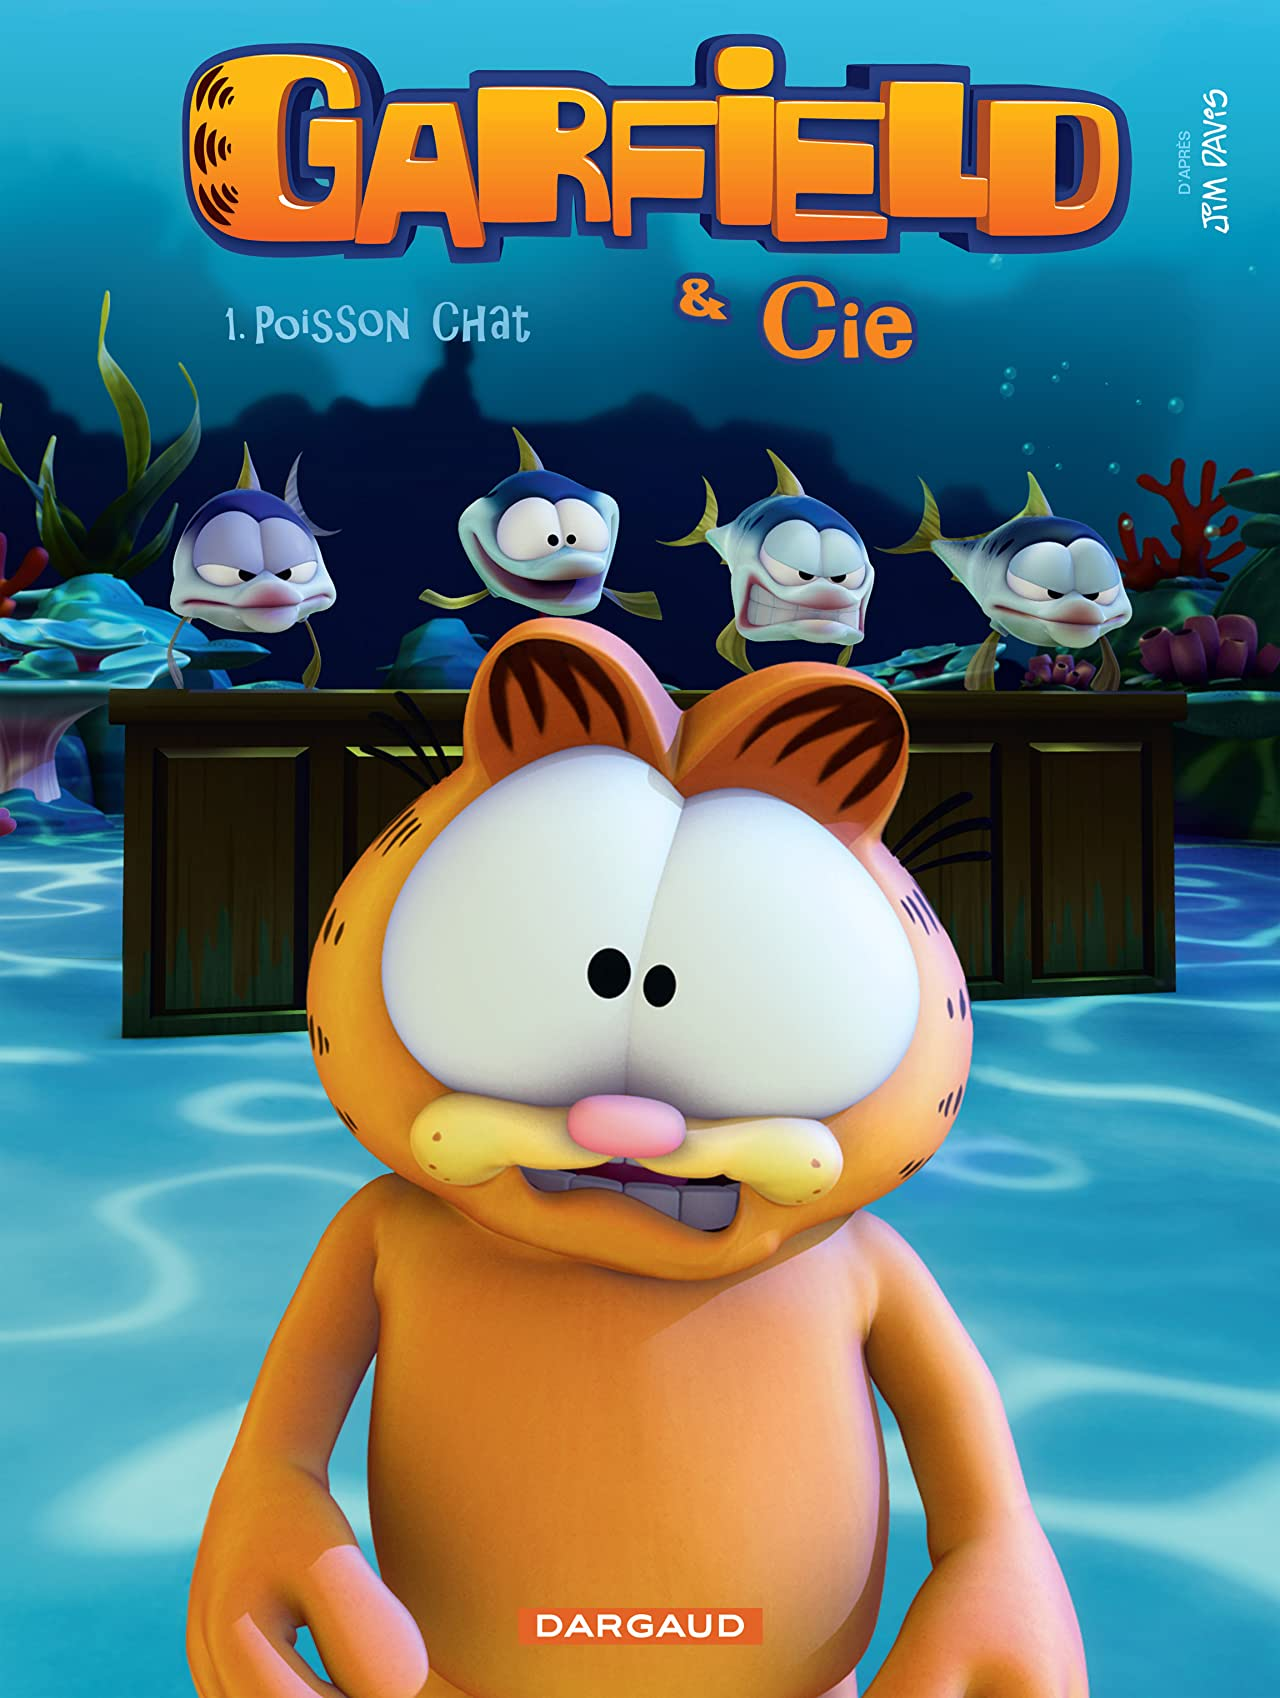 Garfield et Cie Vol. 1: Poisson Chat